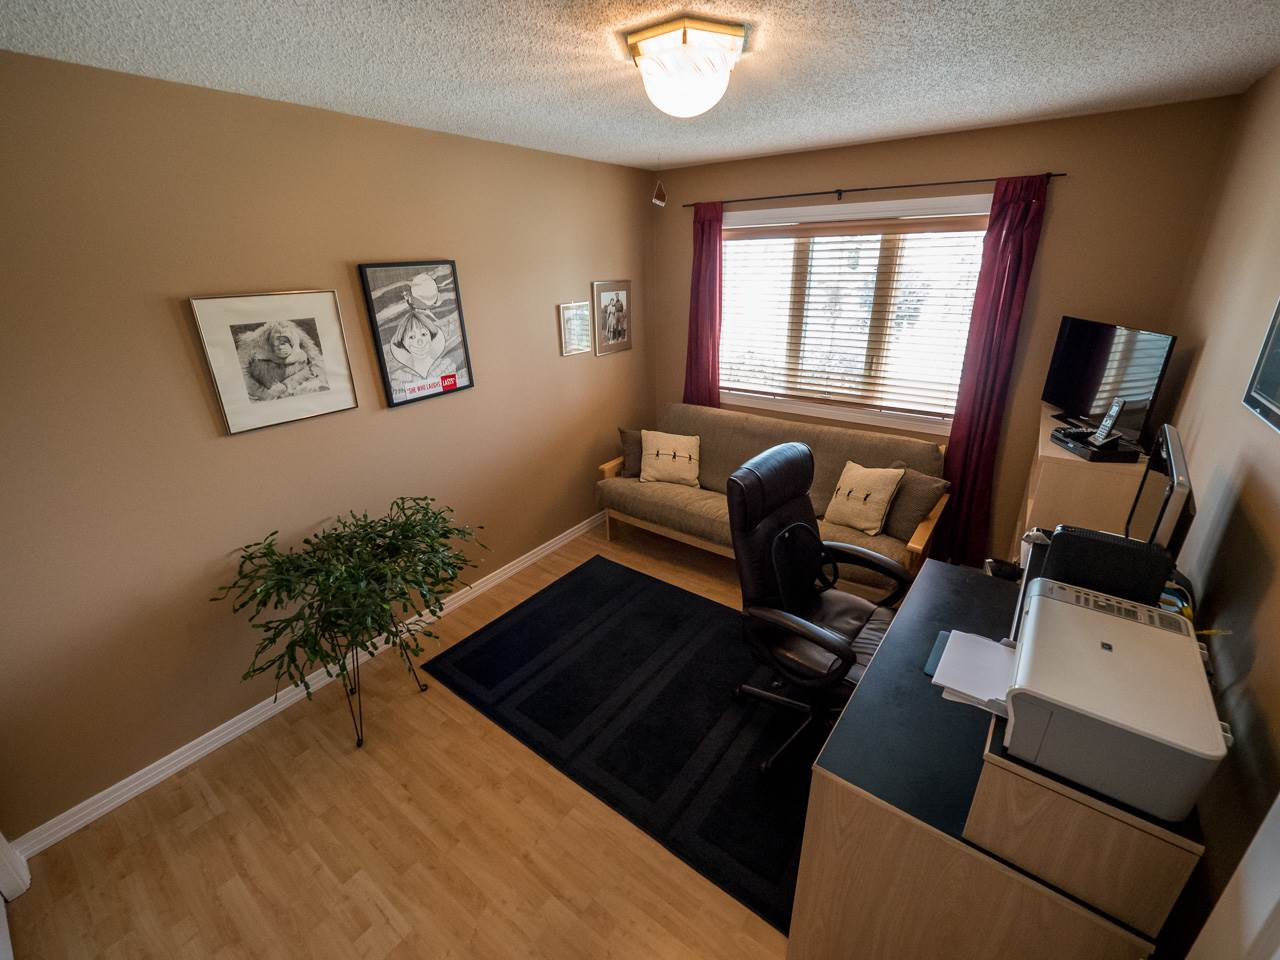 Photo 19: 205 WEBER Place in Edmonton: Zone 20 House for sale : MLS® # E4077601